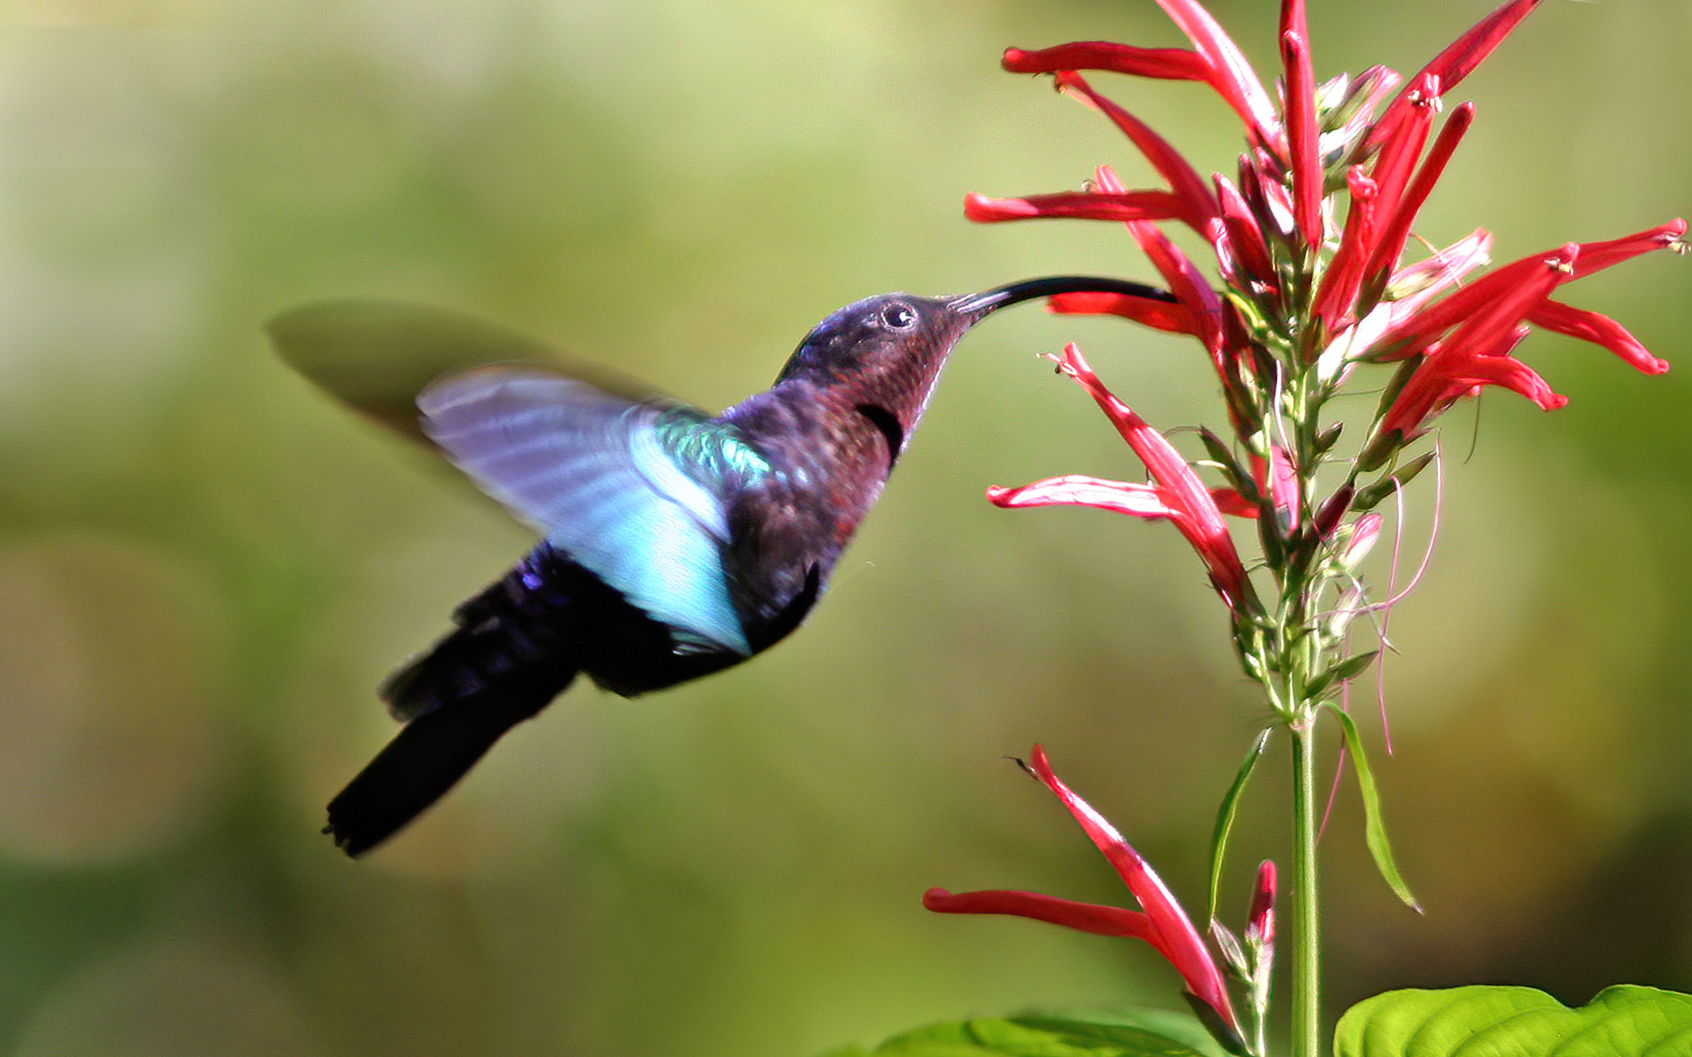 http://upload.wikimedia.org/wikipedia/commons/4/46/Purple-throated_carib_hummingbird_feeding.jpg